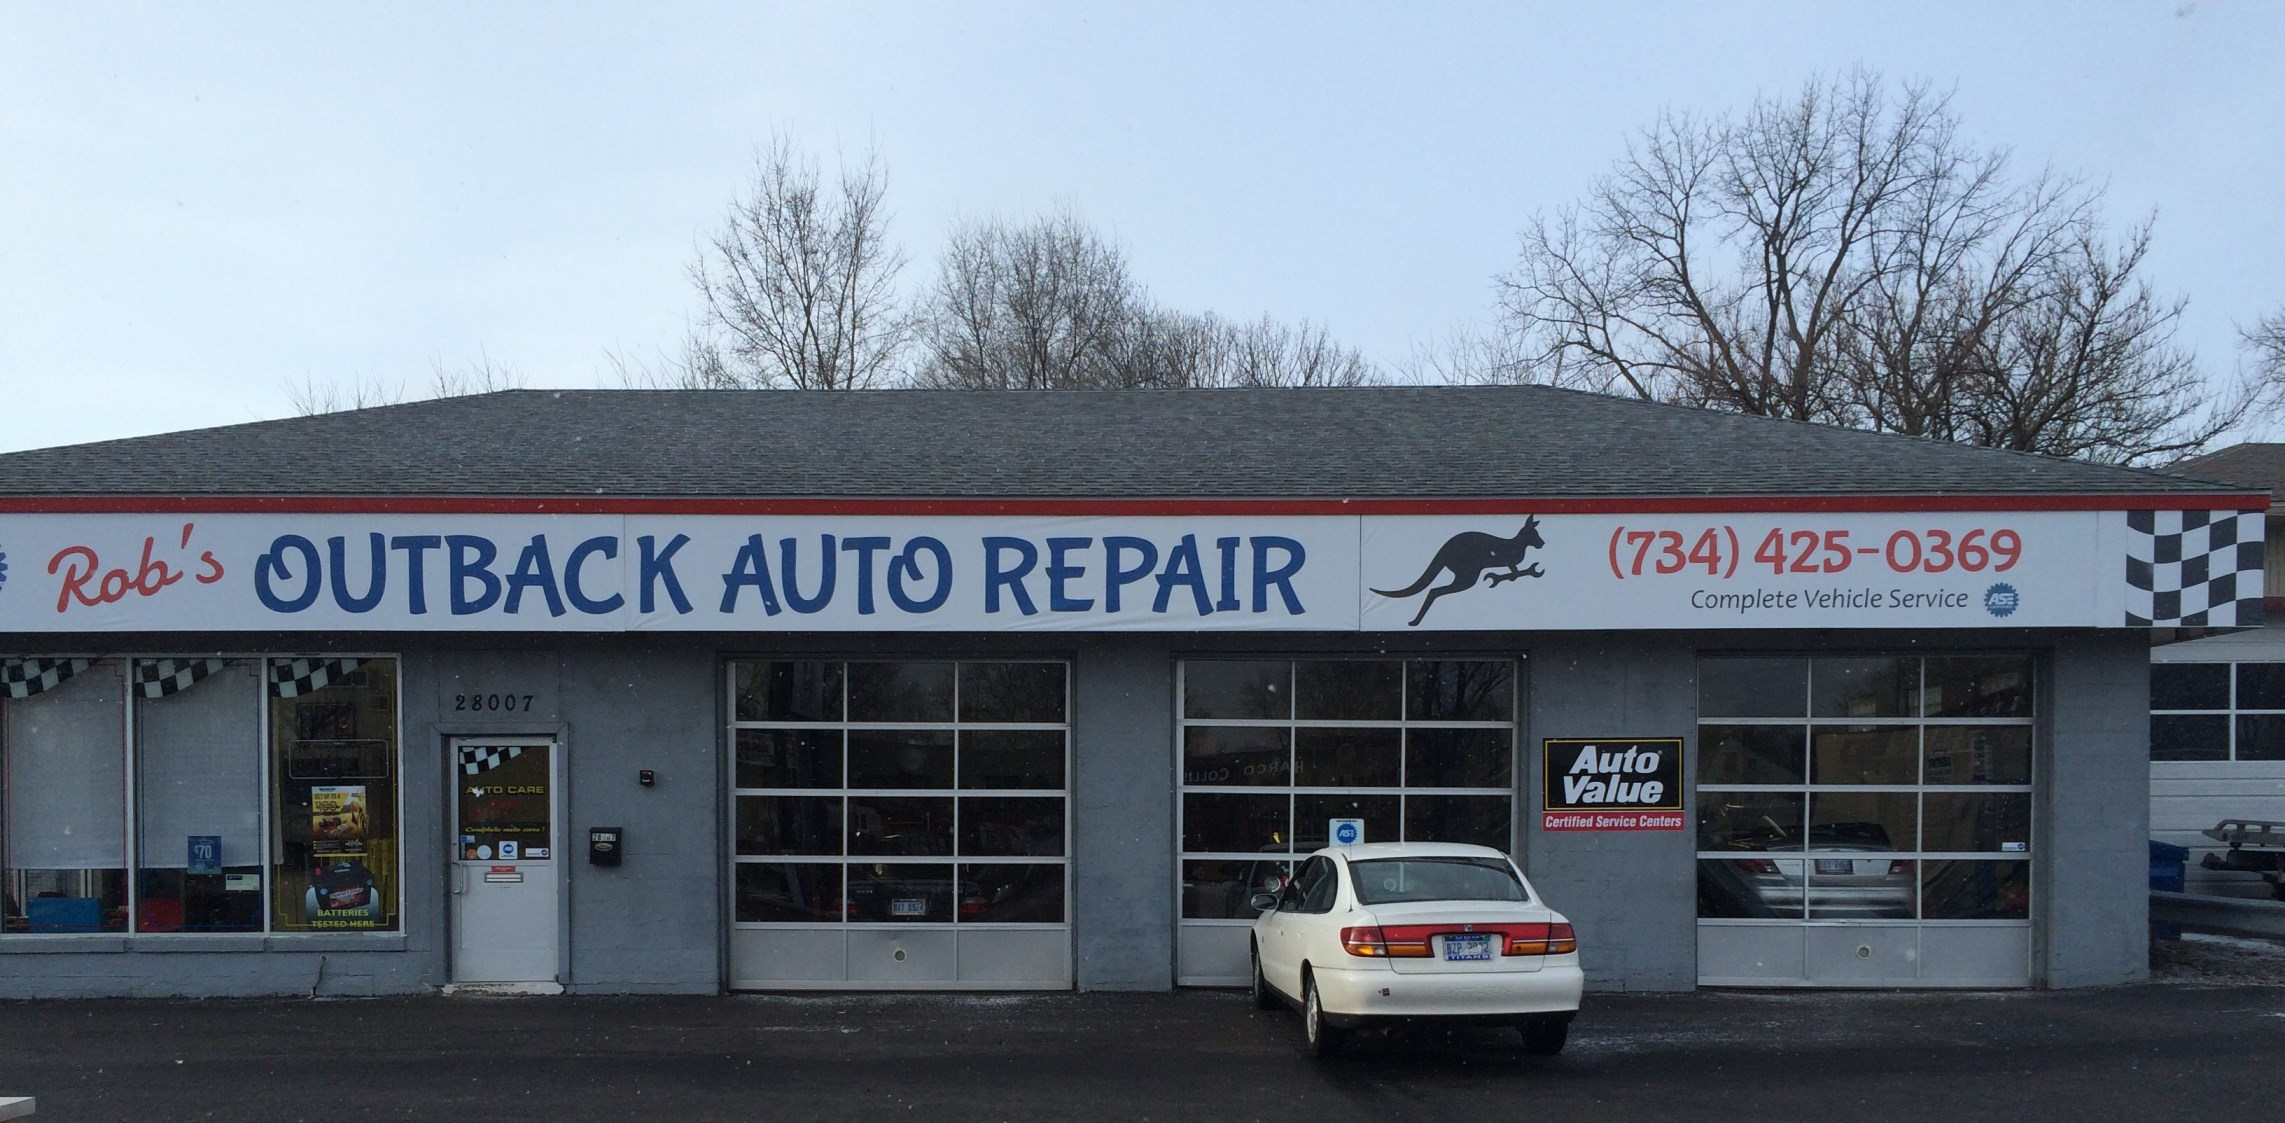 Rob's Outback Auto Repair